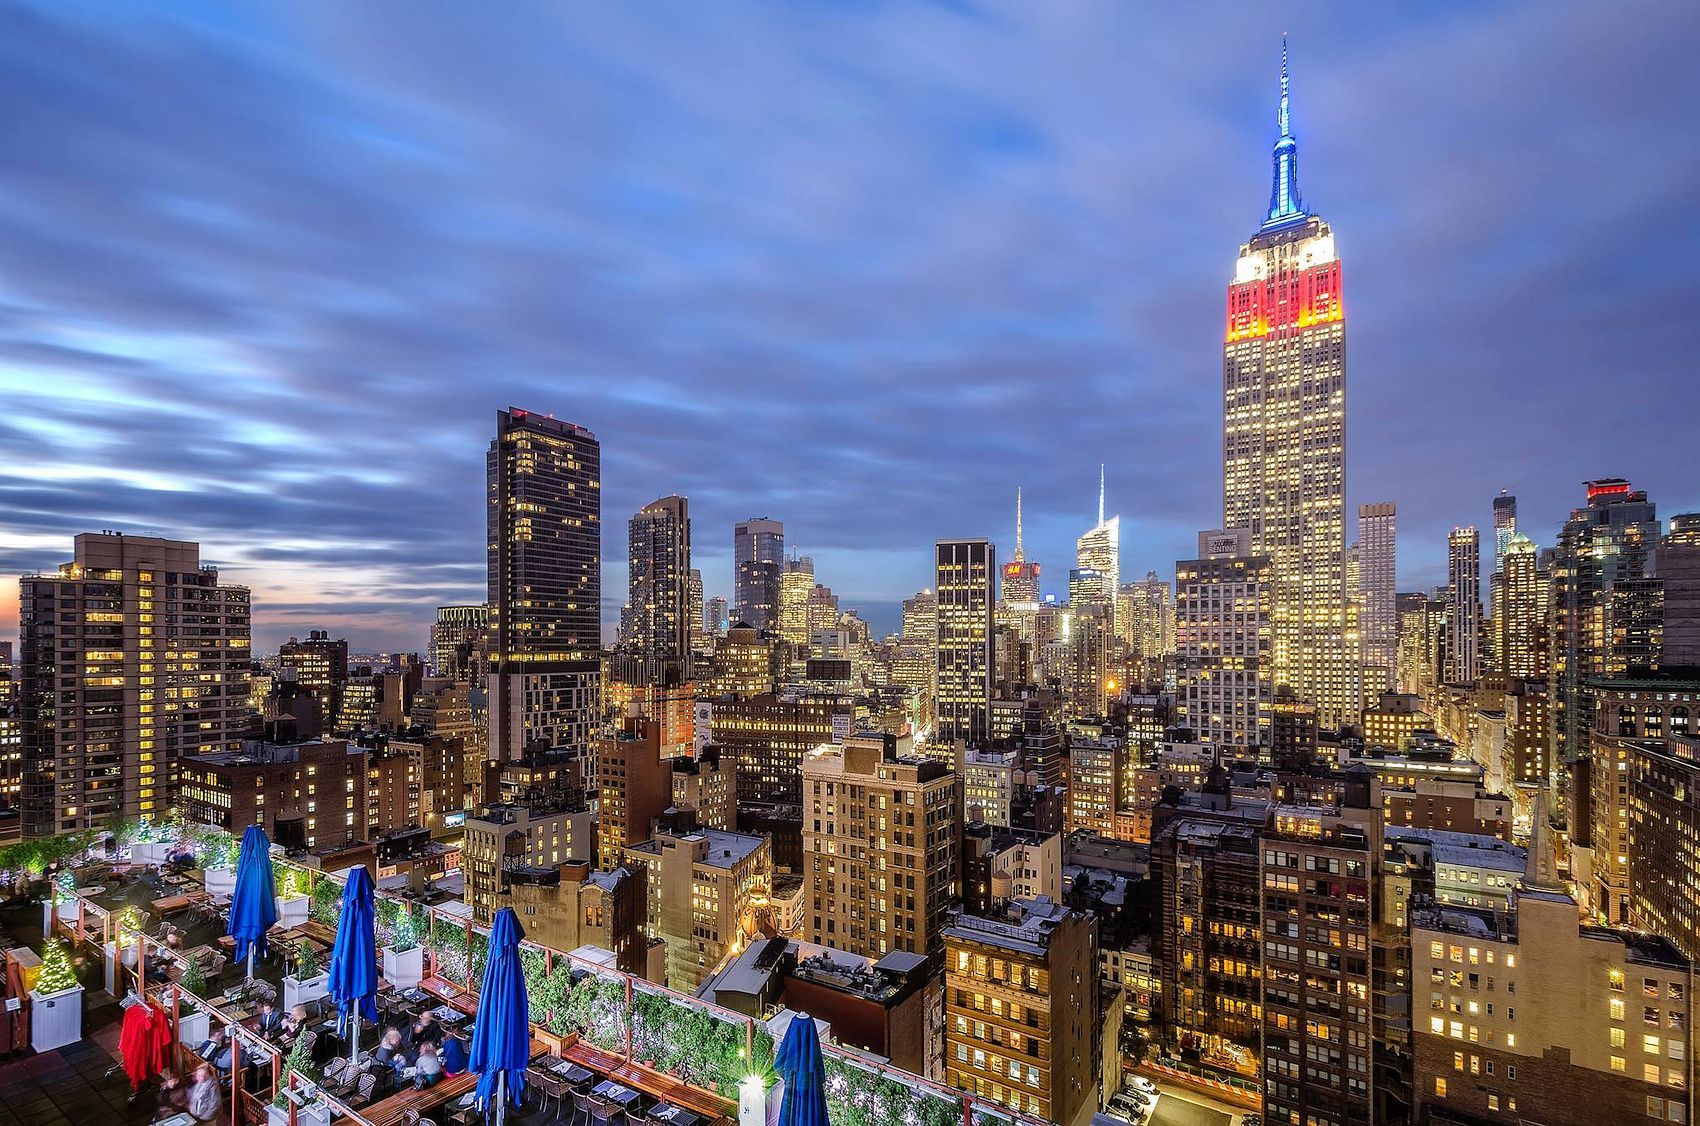 Combining world-class cocktails with dazzling skyline views, these are the coolest, classiest, and most spectacular rooftop bars in NYC.